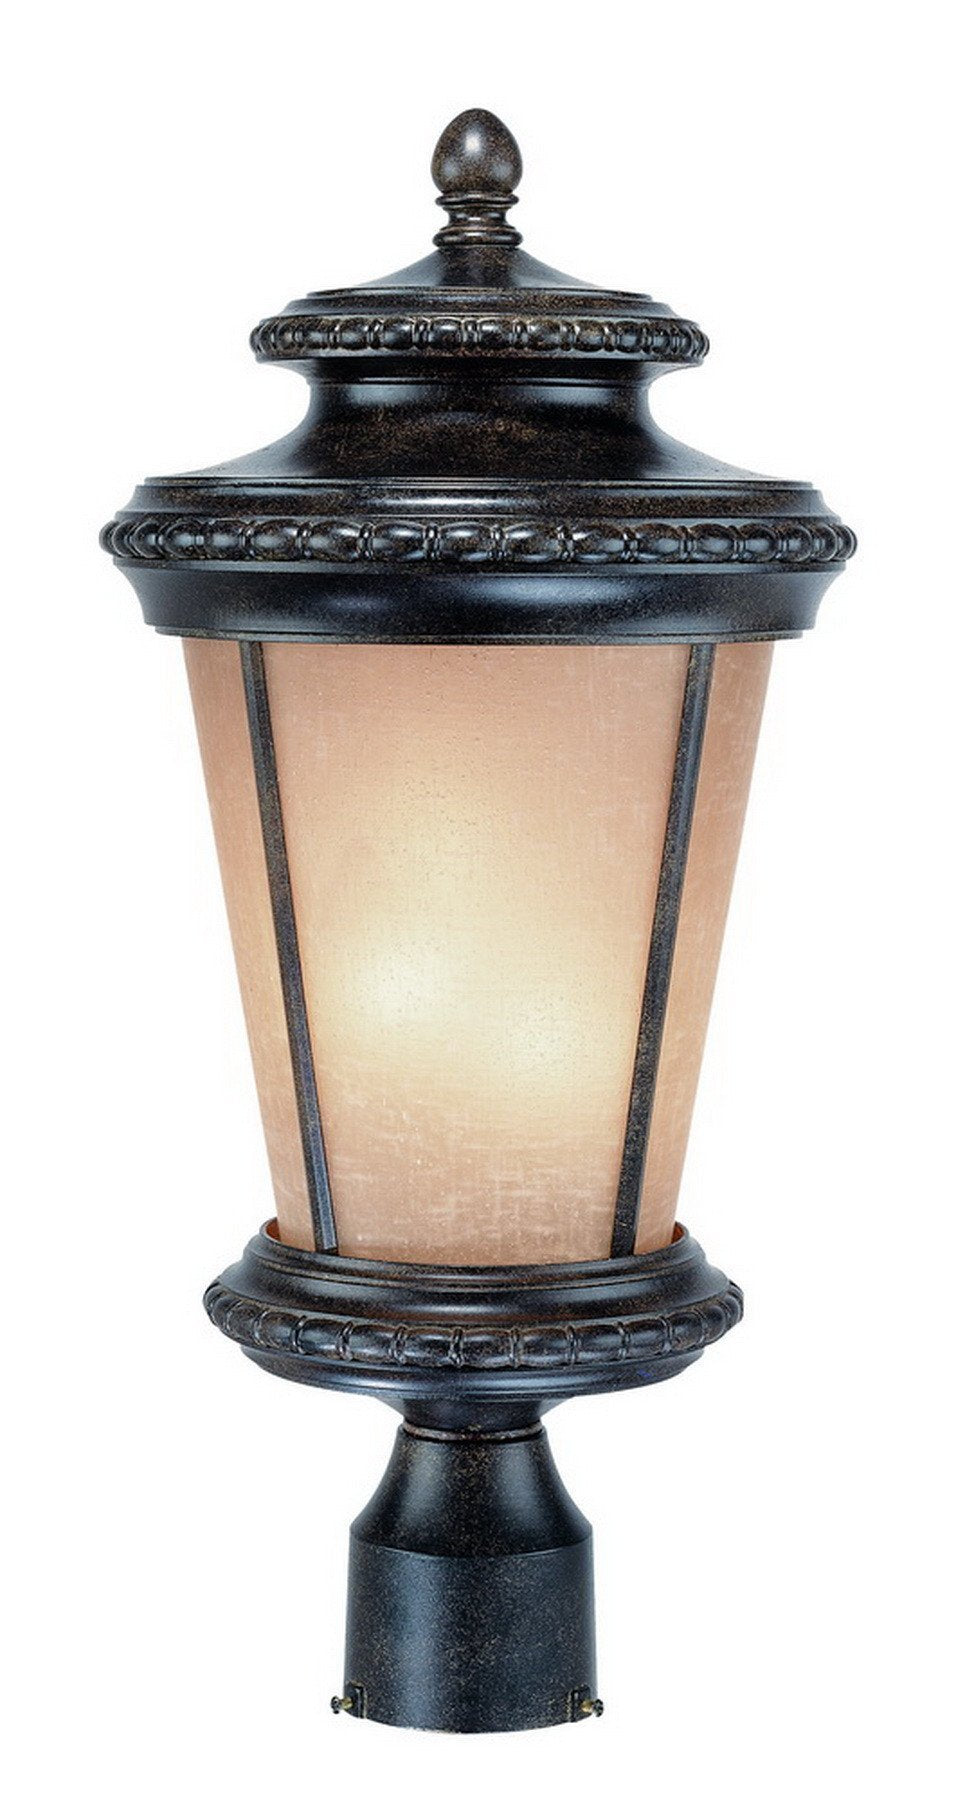 9137-114 Dolan Designs Edgewood 3 Light Post Manchester